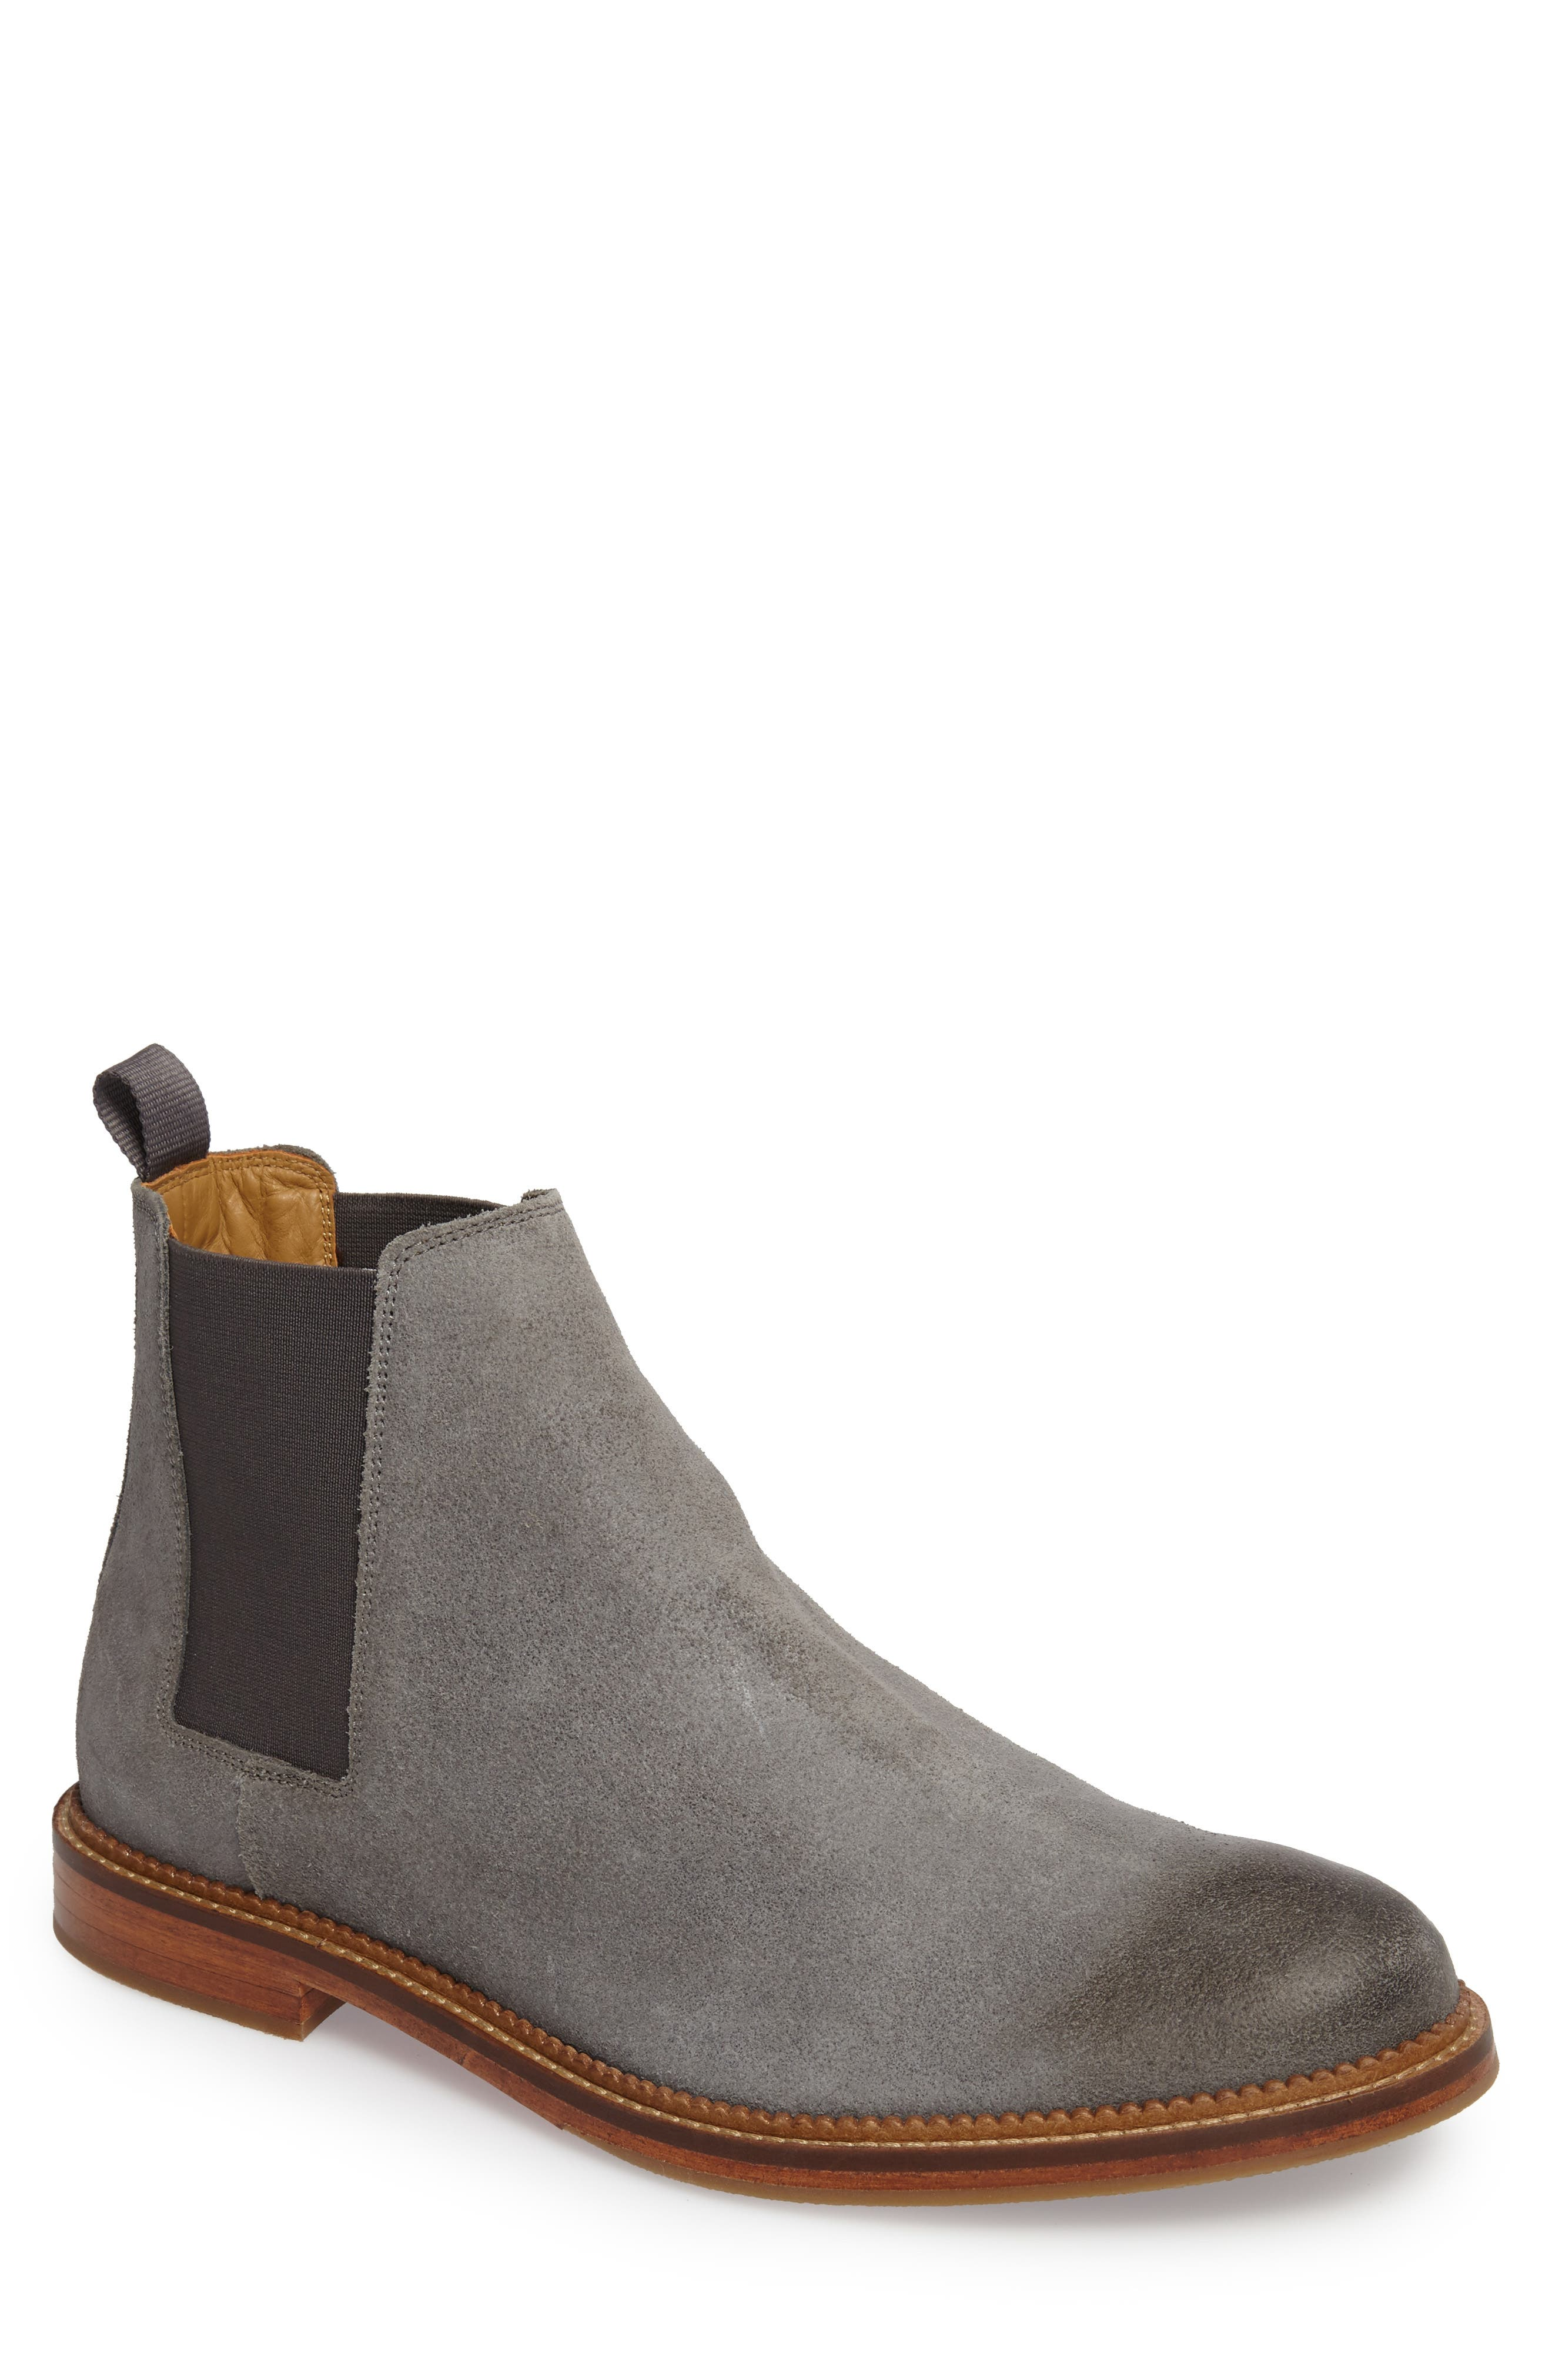 Jamie Chelsea Boot,                             Main thumbnail 1, color,                             Magnet Suede